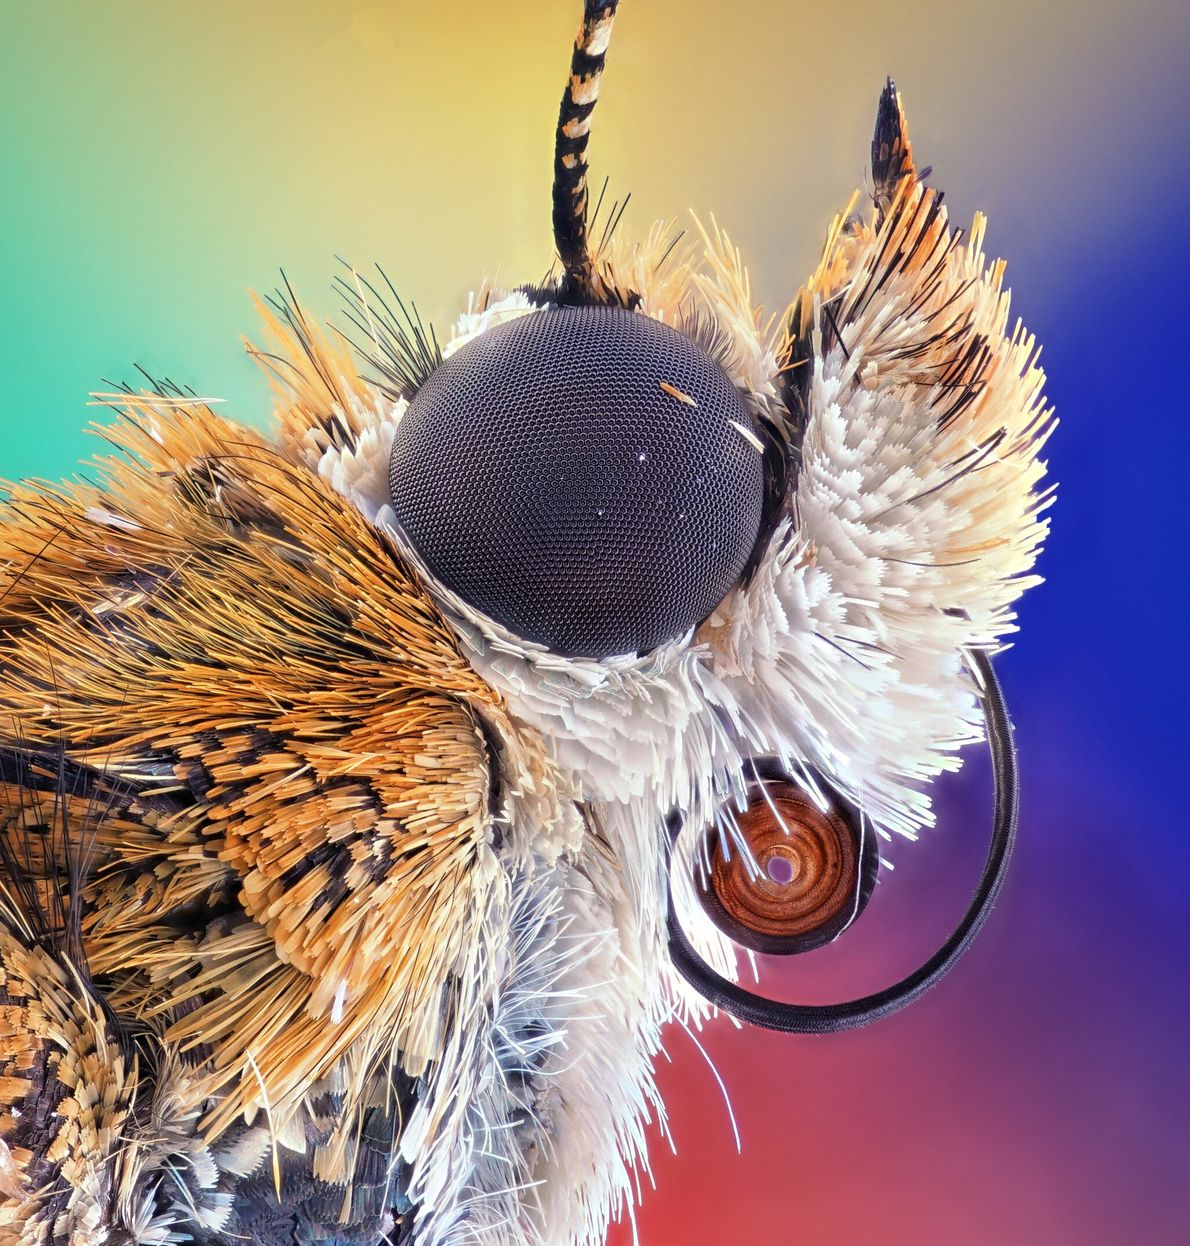 Most moths have eyes coated in a nanostructure that sucks in light and prevents reflection, which ...